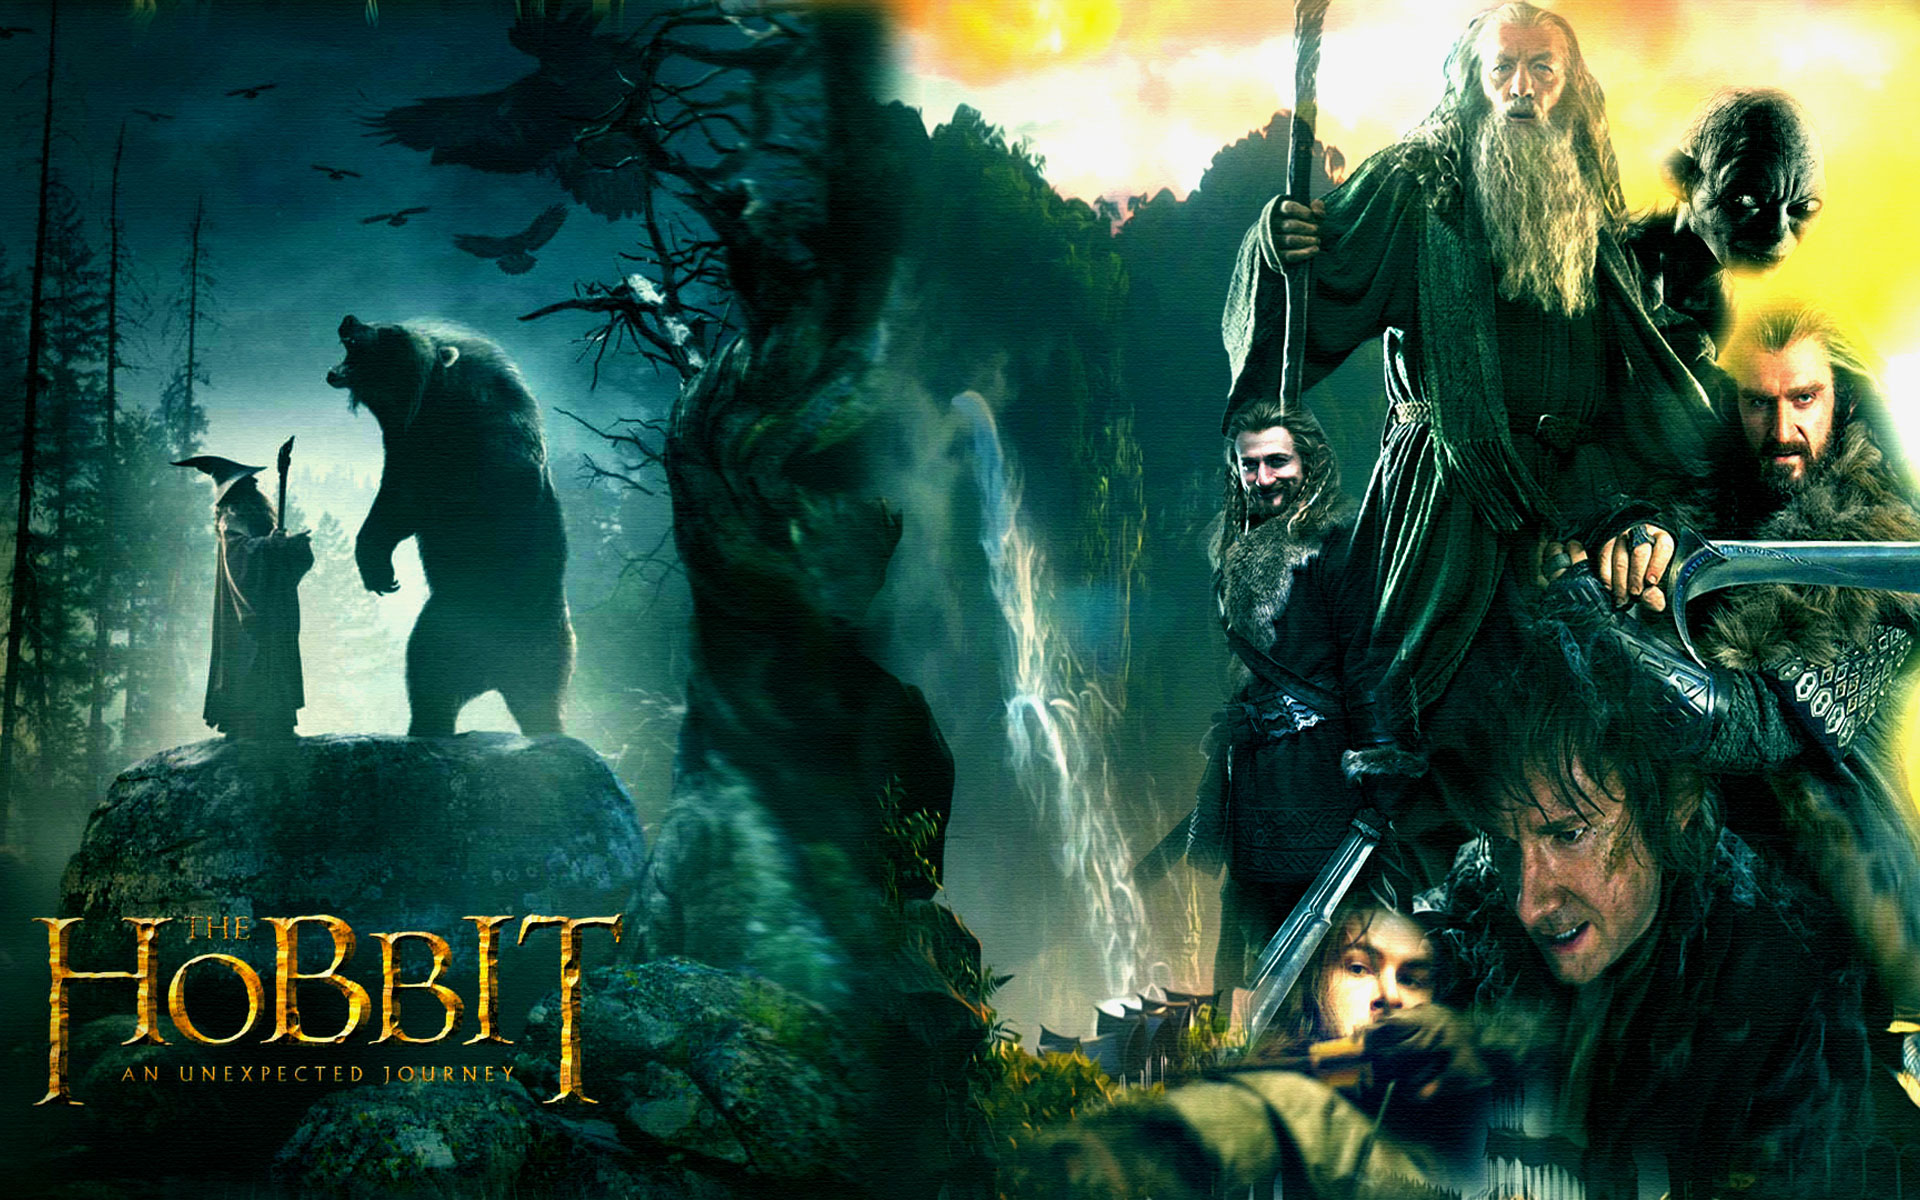 The Hobbit Movie Wallpaper HD Desktop Backgrounds 1920x1200